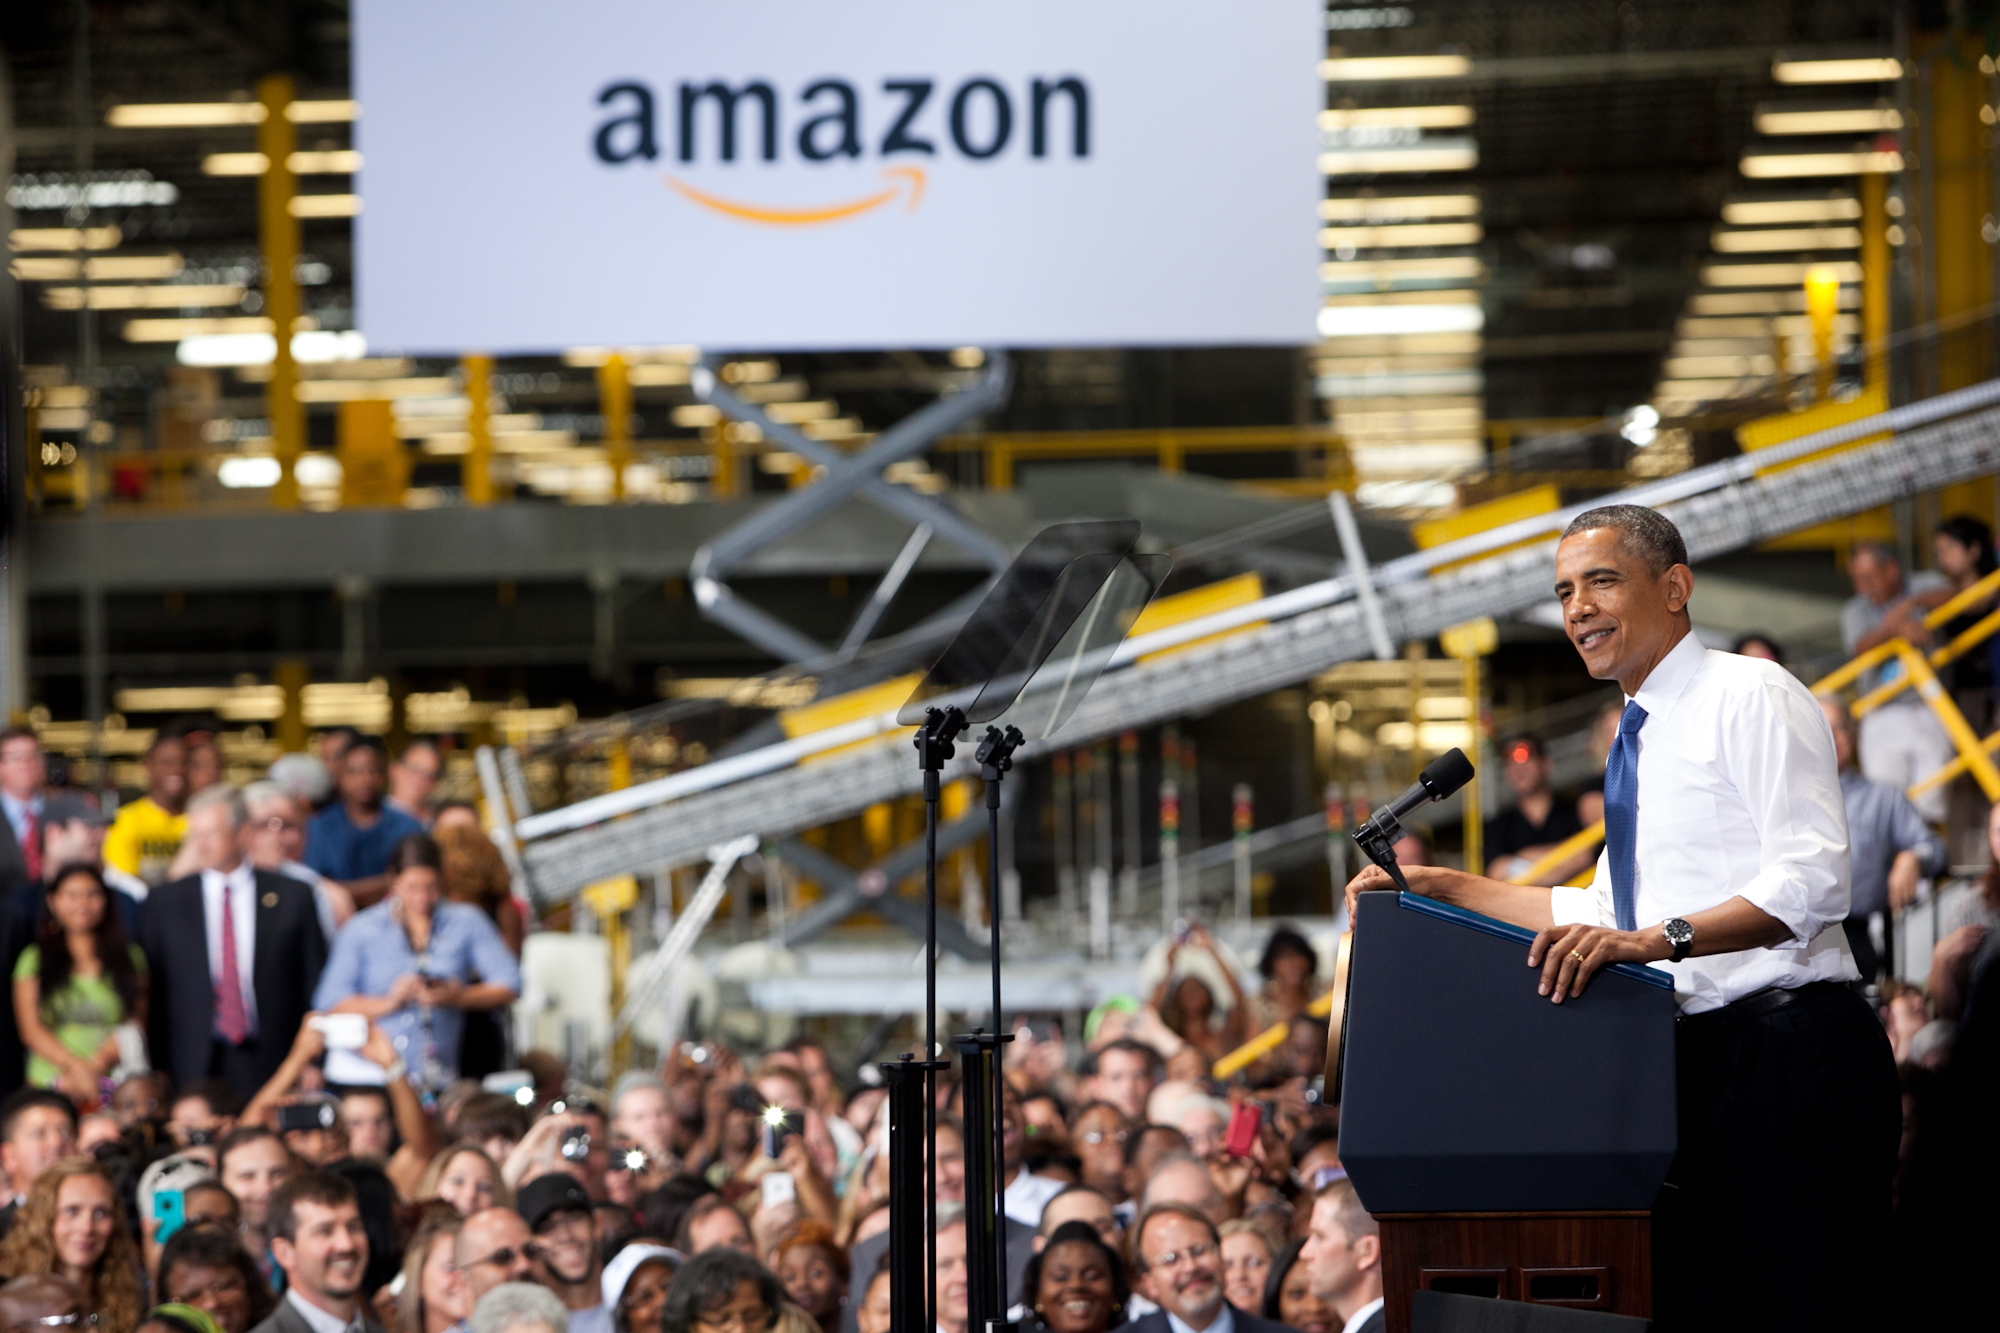 CHATTANOOGA, TN - JULY 30:  President Obama makes a speech about the economy and jobs at an Amazon Fulfillment Center in Chattanooga, Tennessee on July 30, 2013.  Amazon announced this week that it expected to have 7,000 job openings across the country.  (Photo by Jessica McGowan/Getty Images)